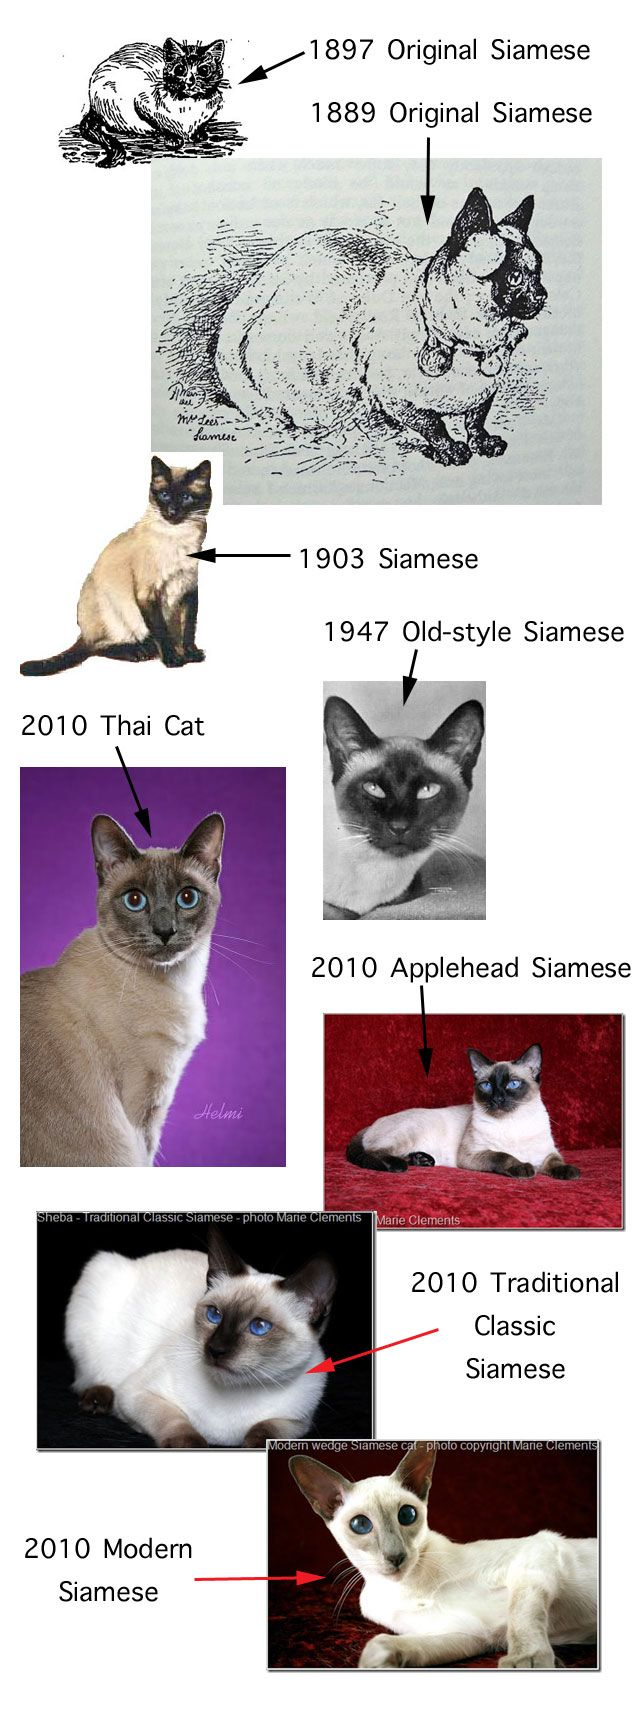 Siamese cat types--- ()()  1903 Siamese-1947-old style Siamese.2010 Thai Cat + more ()() http://www.mainecoonguide.com/male-vs-female-maine-coons/